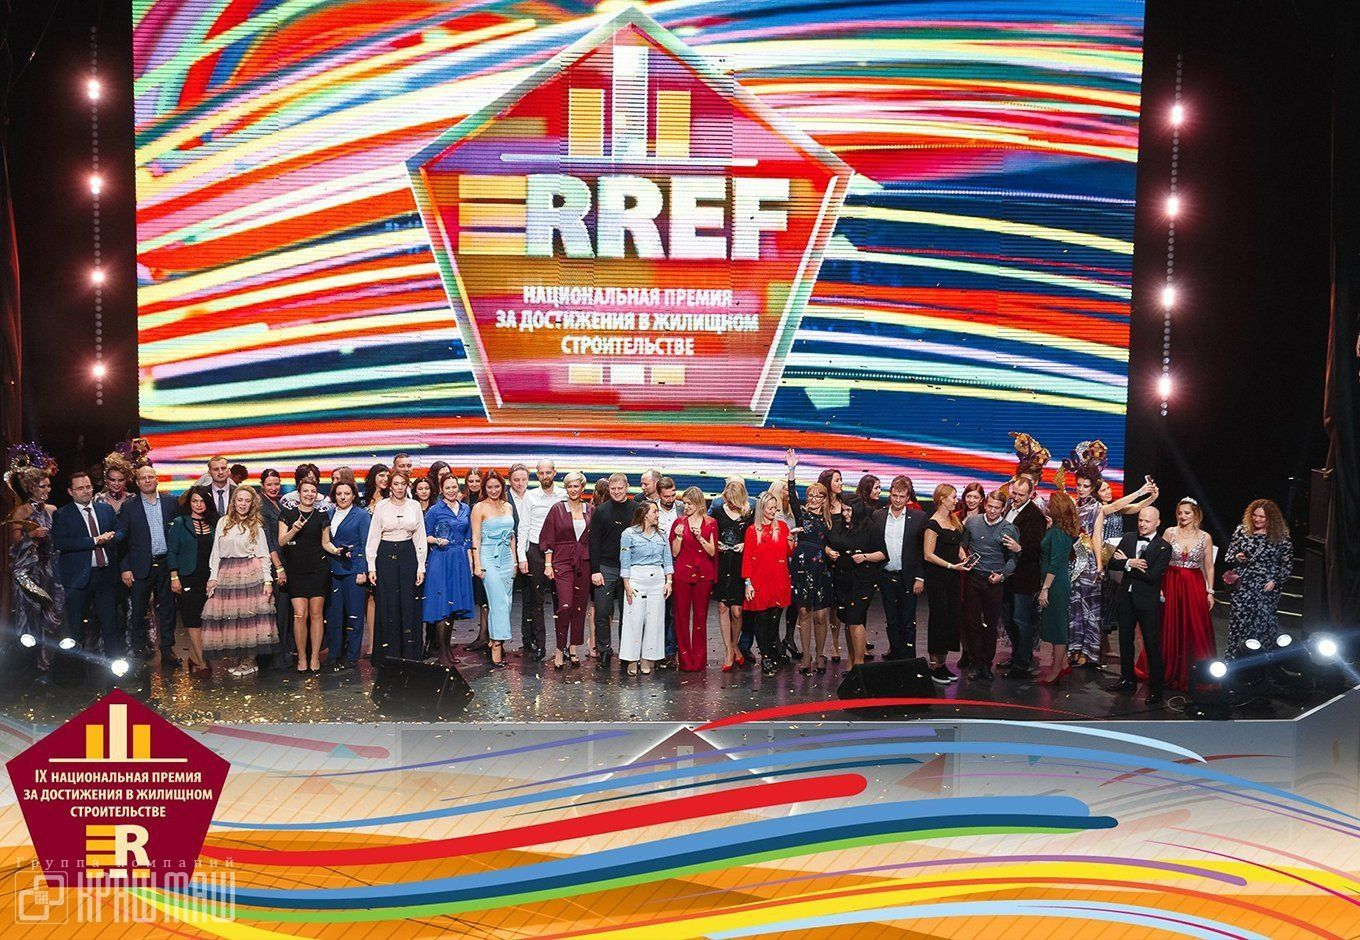 Руководители ГК «КрашМаш» приняли участие в церемонии награждения RREF AWARDS 2018